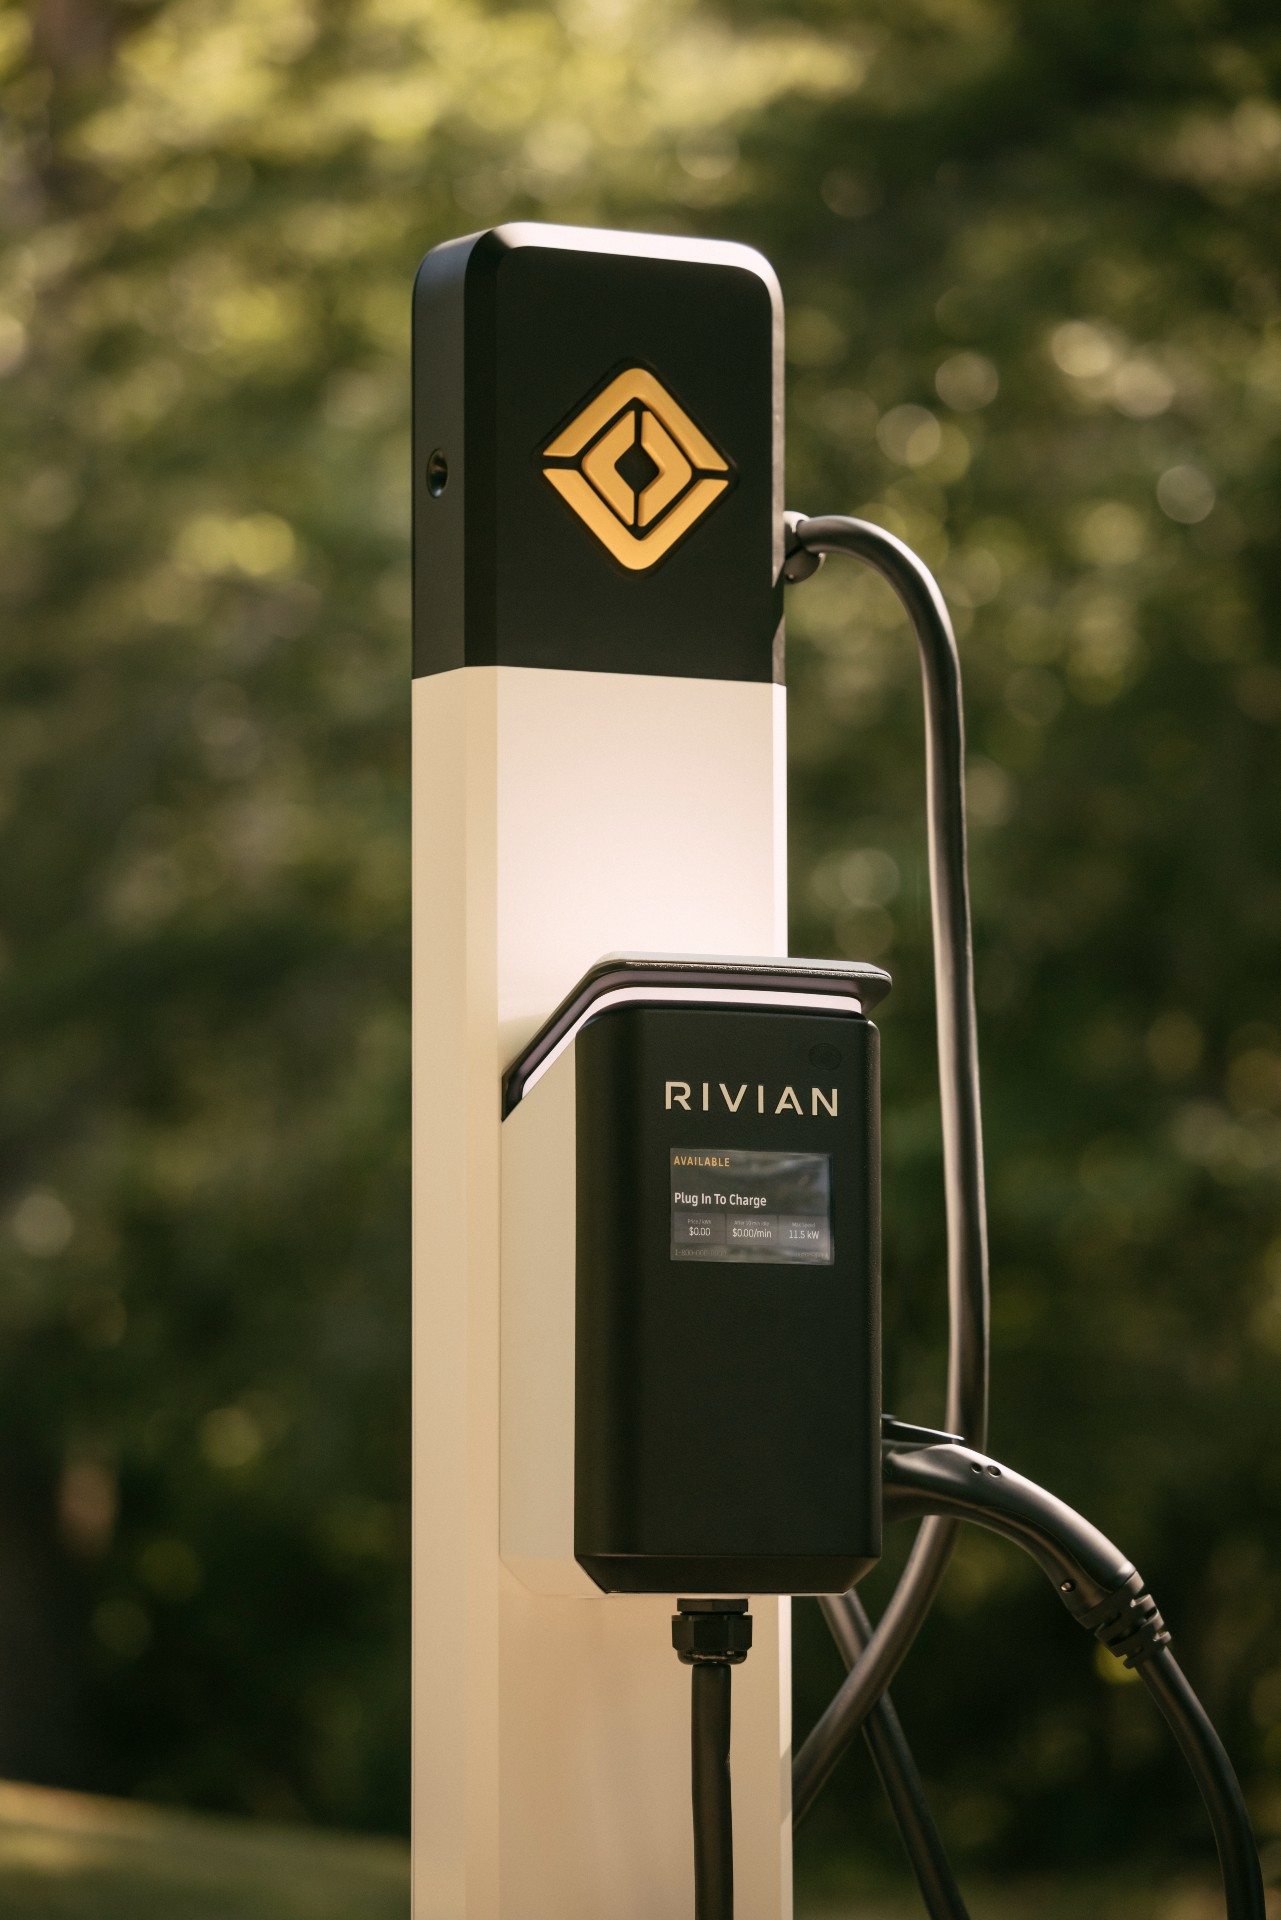 rivian-tdec-charging-tennessee-state-parks-1